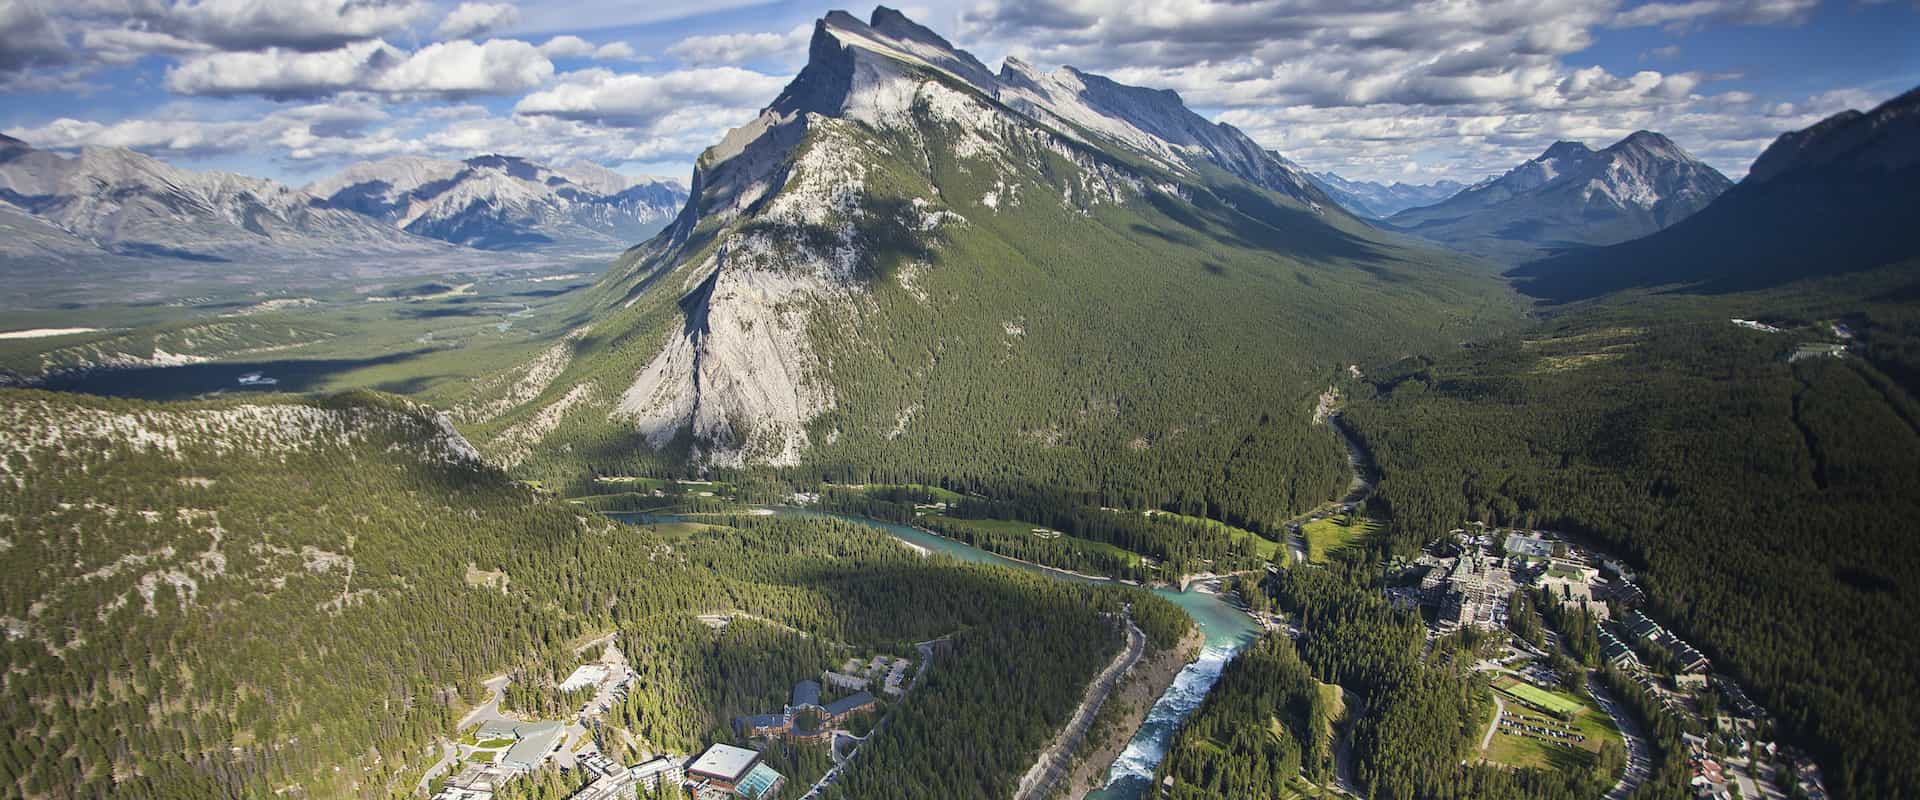 Banff National Park Aerial View